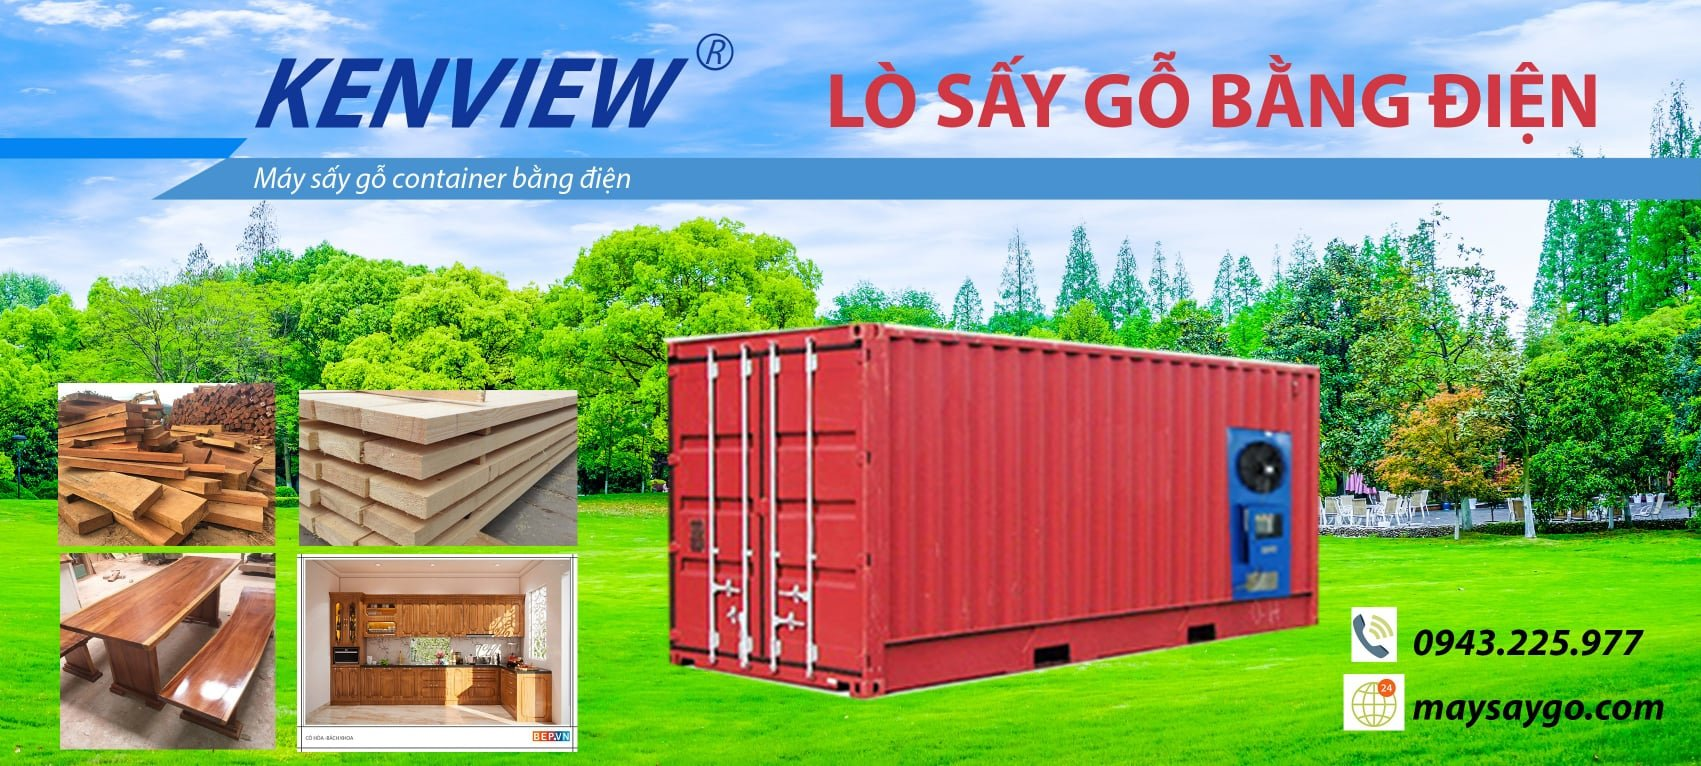 Lò sấy gỗ container